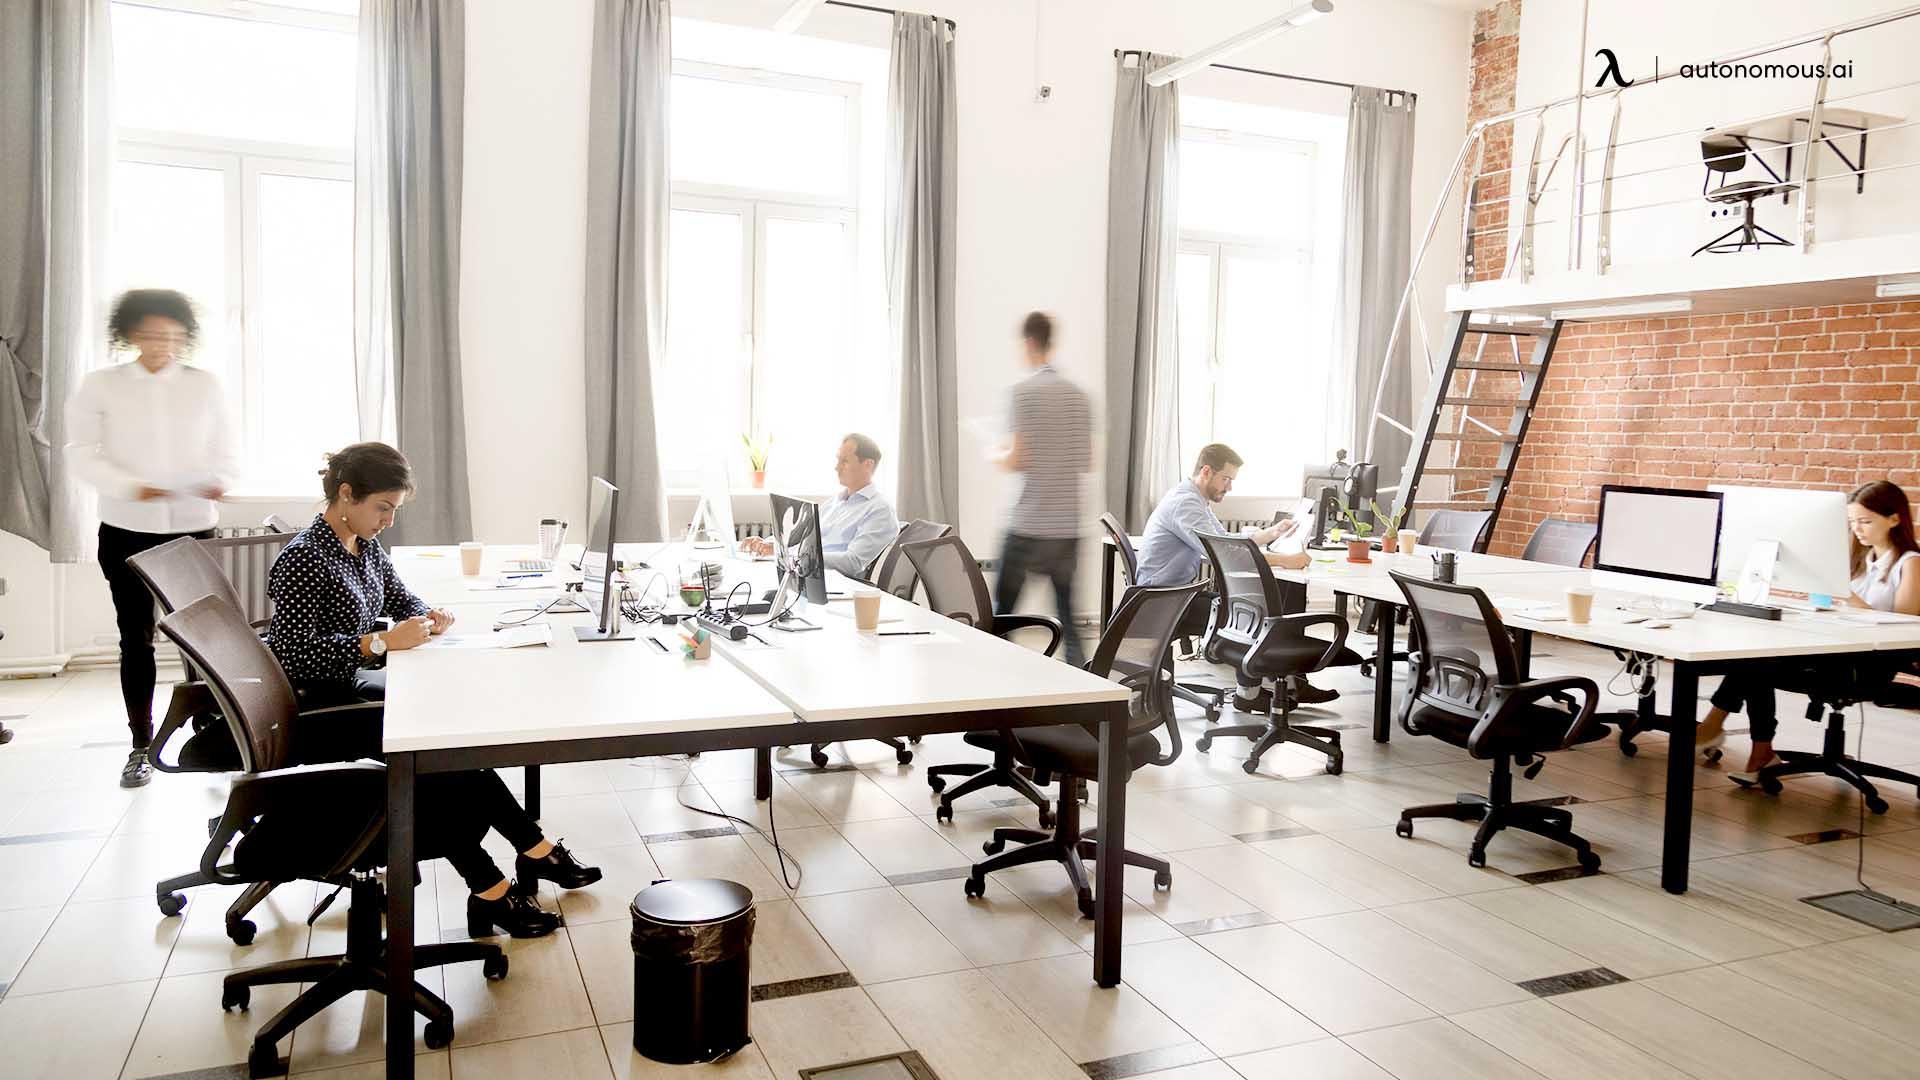 About coworking spaces and shared workspaces